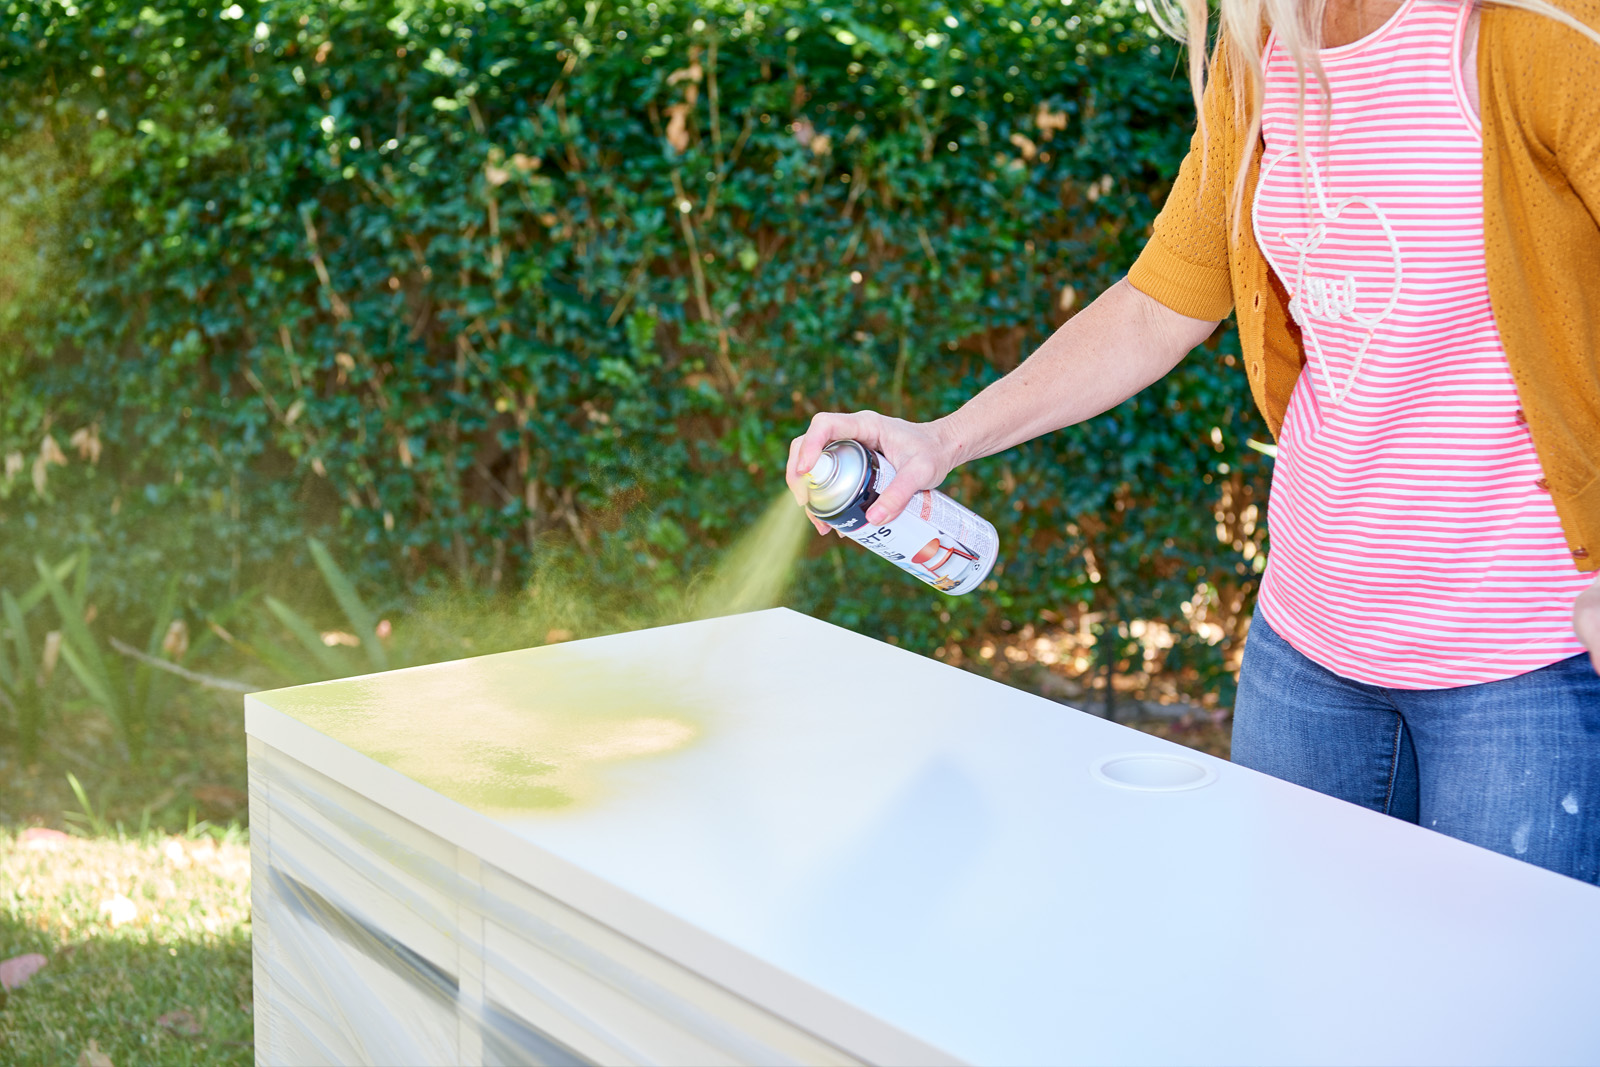 Cherie-Barber_Renovating-For-Profit_Tween-Bedroom_desk-White-Knight-Squirts